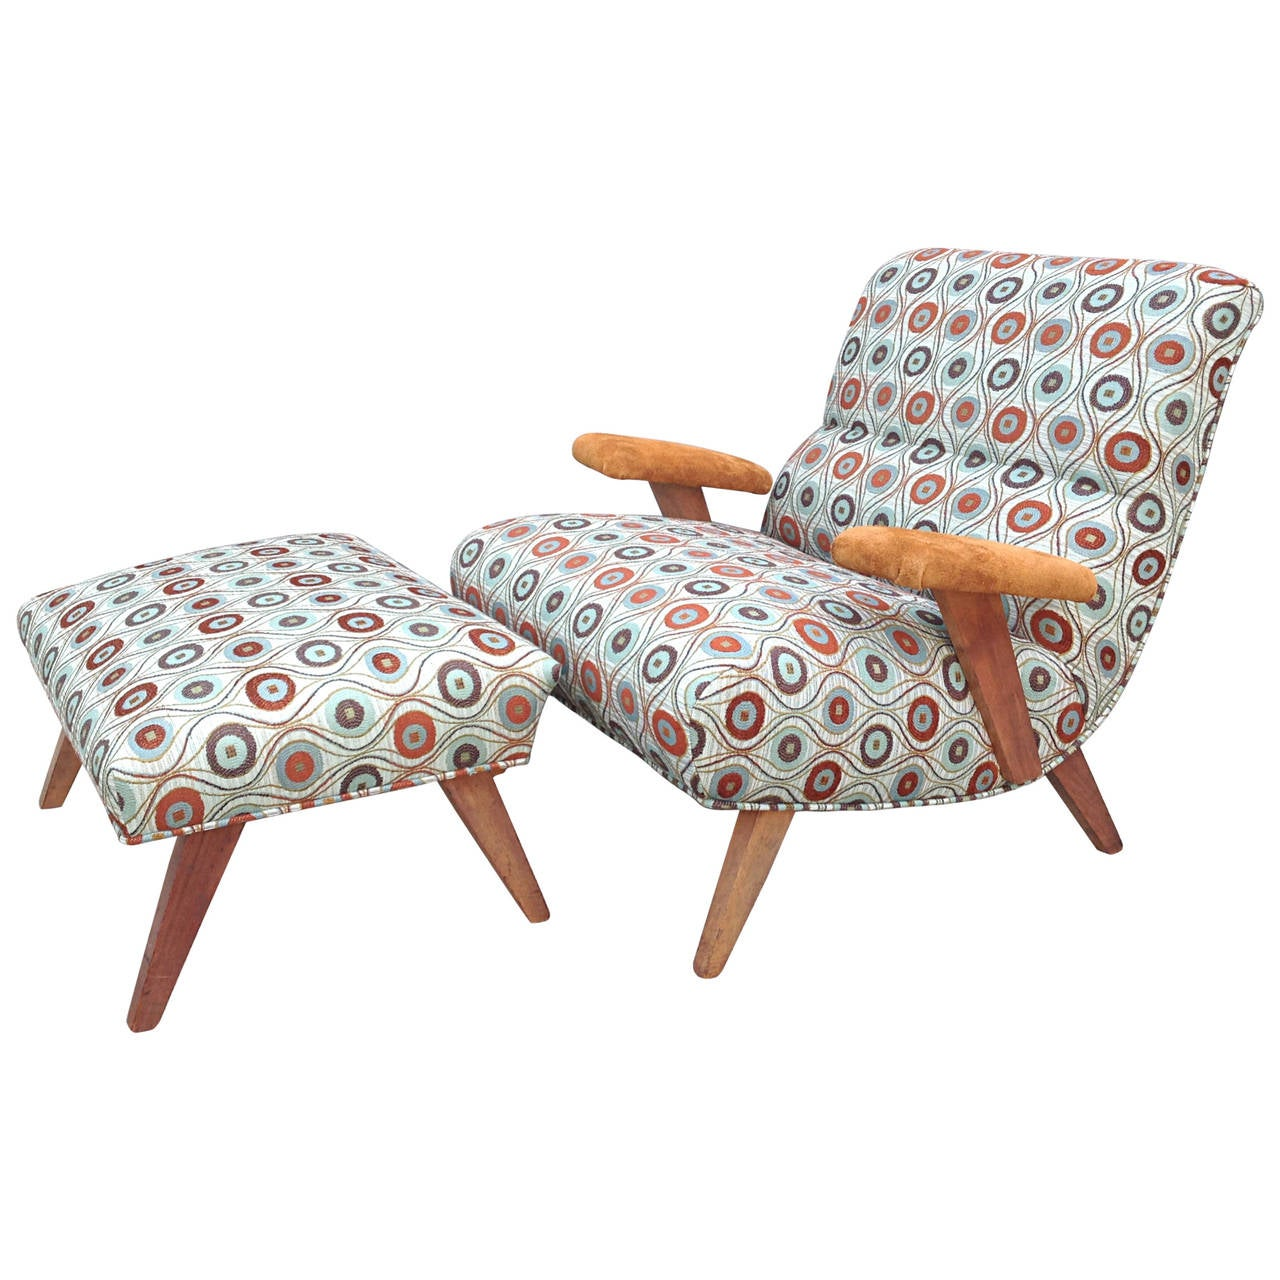 1940s Scoop Lounge Chair and Ottoman